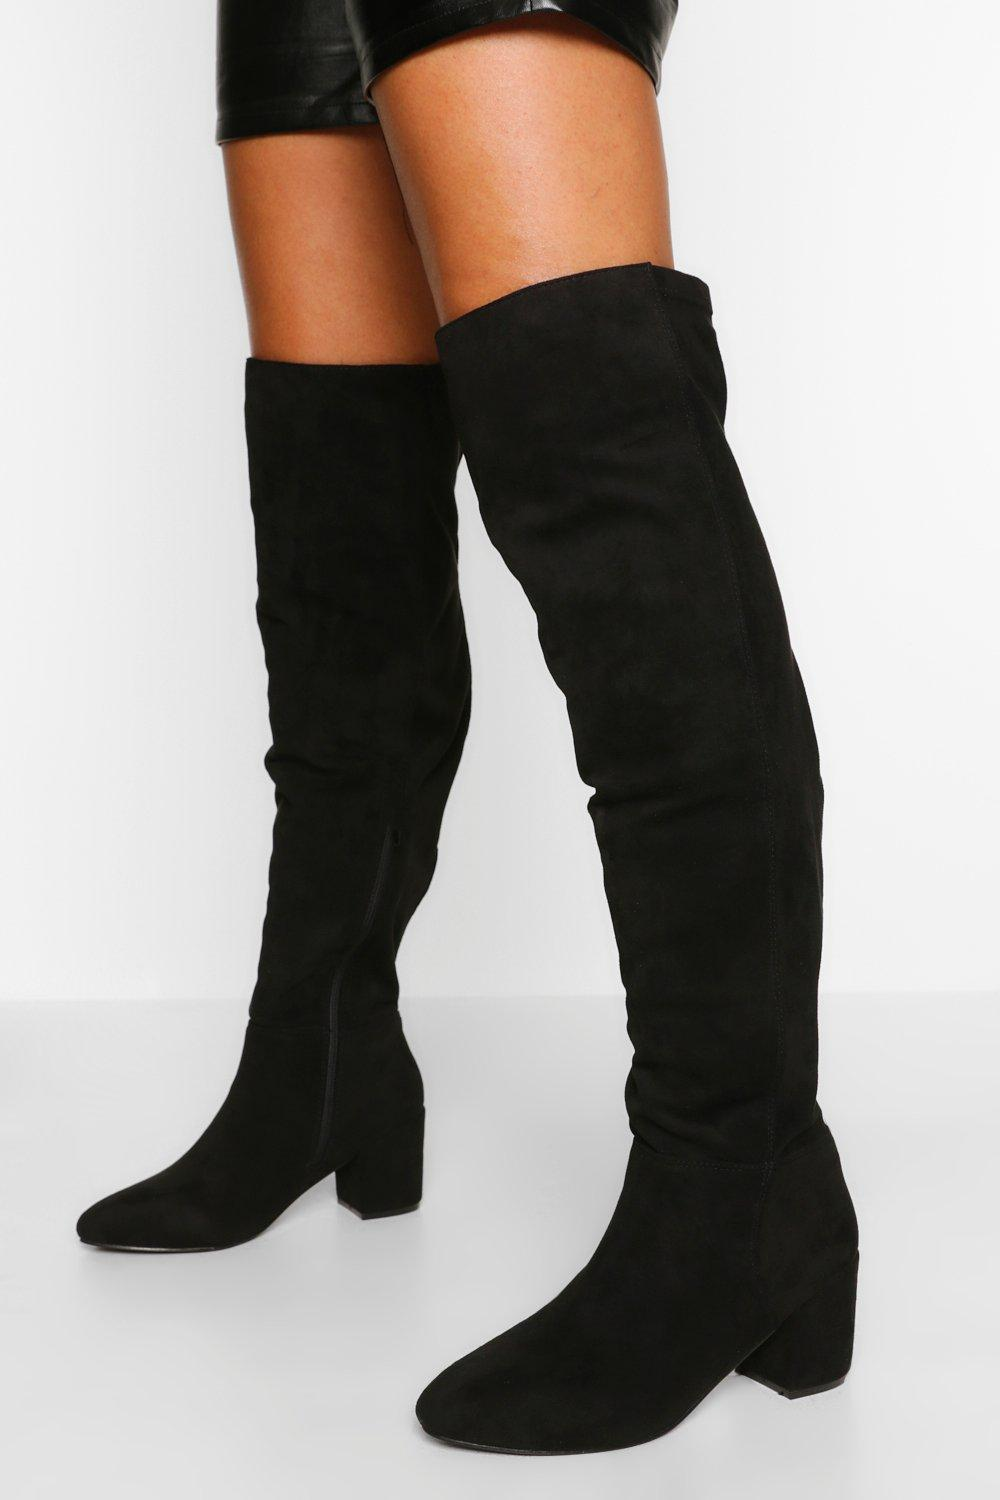 Vintage Boots, Retro Boots Womens Wide Fit Block Heel Stretch Over The Knee Boot - Black - 10 $38.00 AT vintagedancer.com